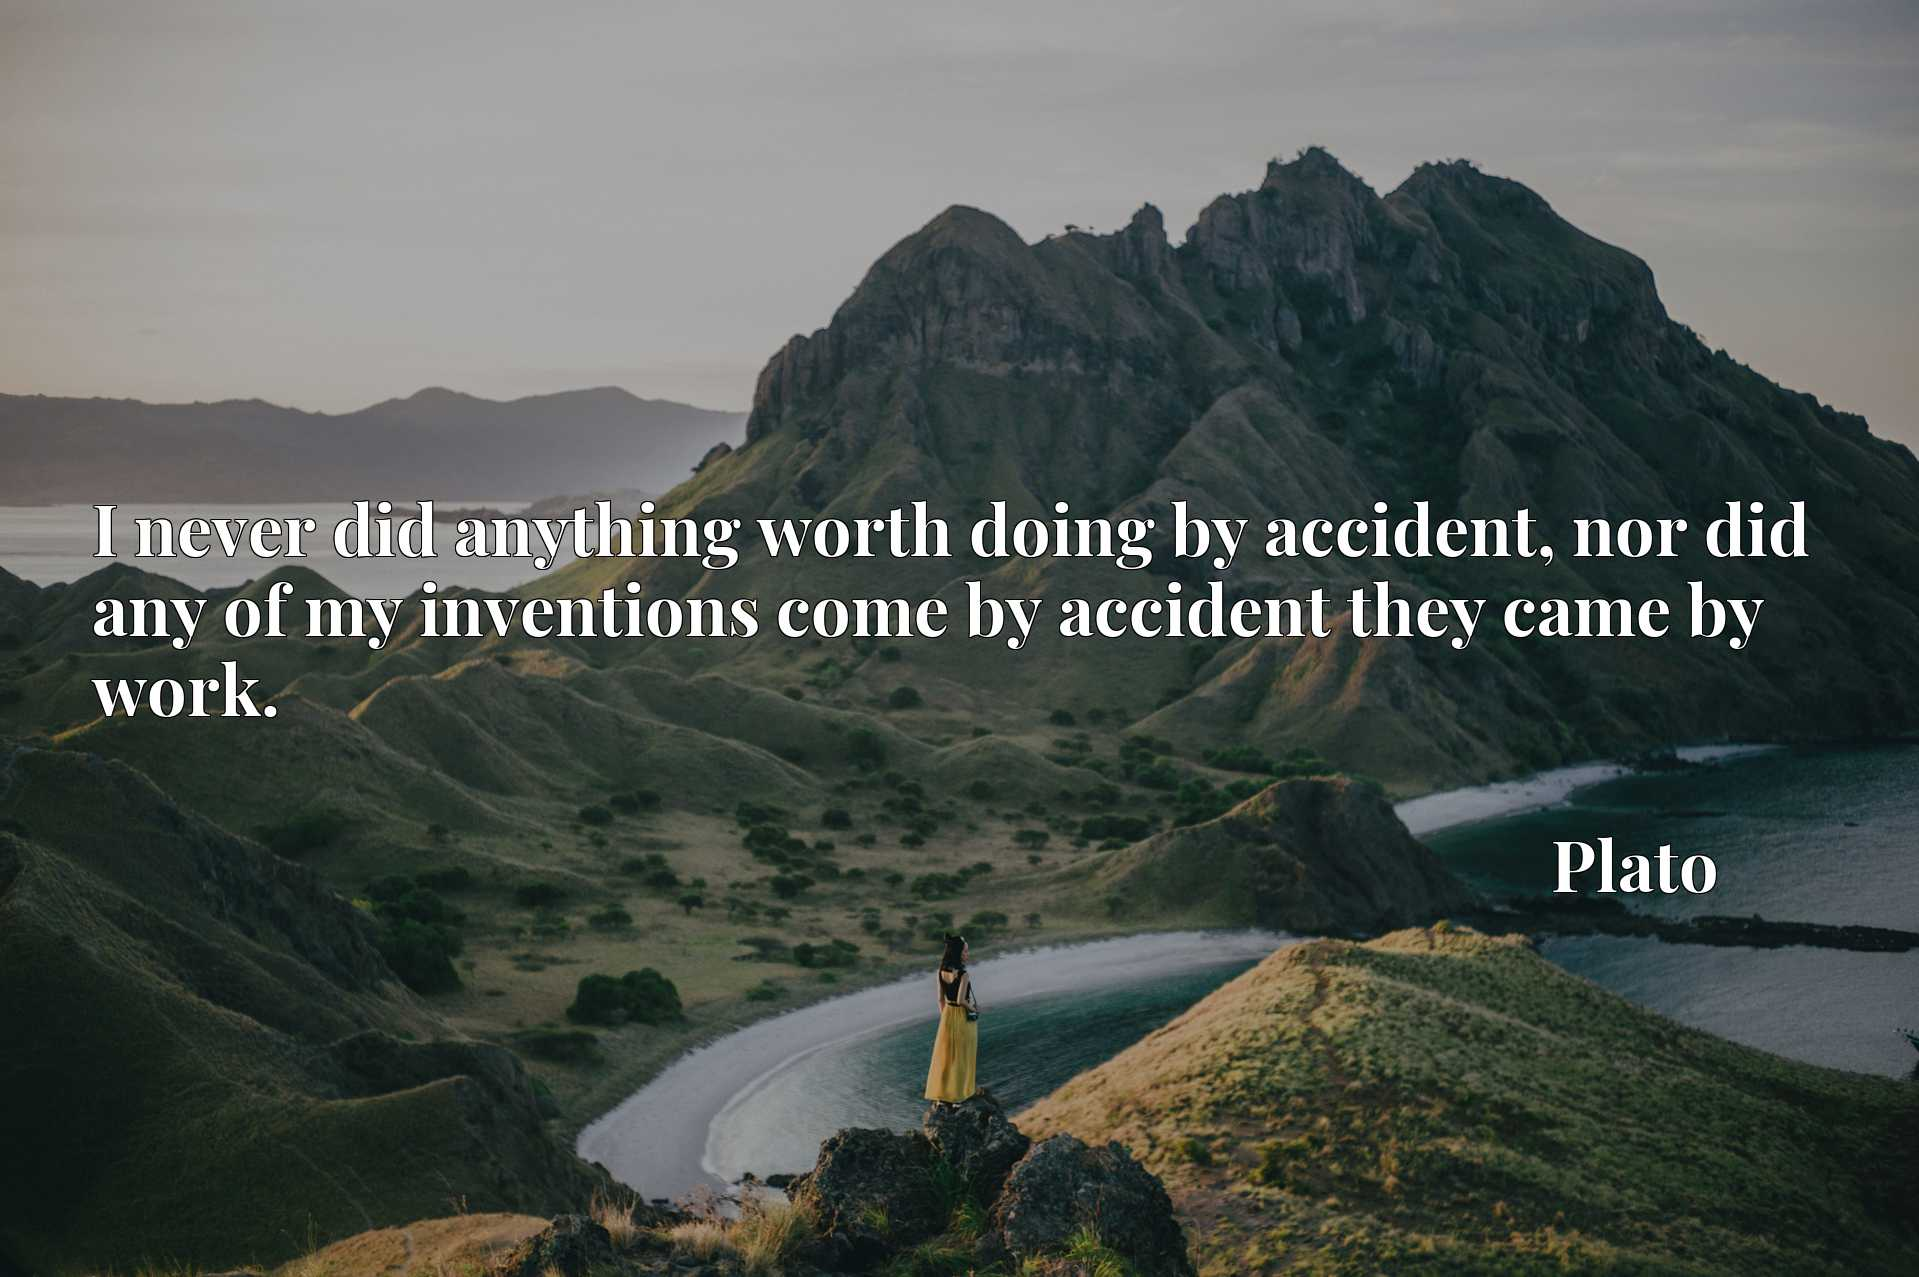 I never did anything worth doing by accident, nor did any of my inventions come by accident they came by work.